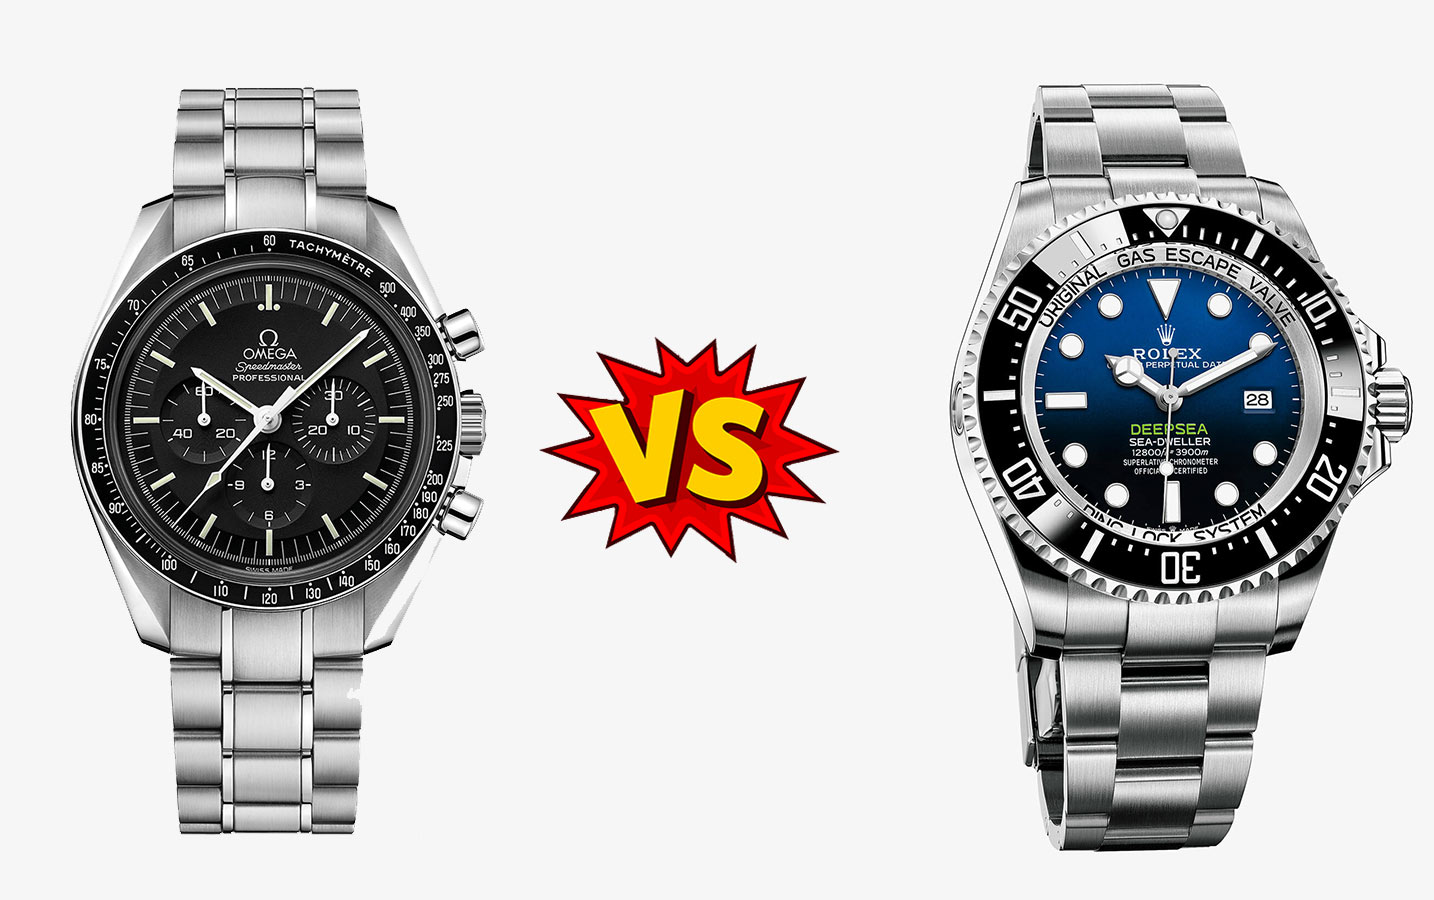 OMEGA watch VS ROLEX watch